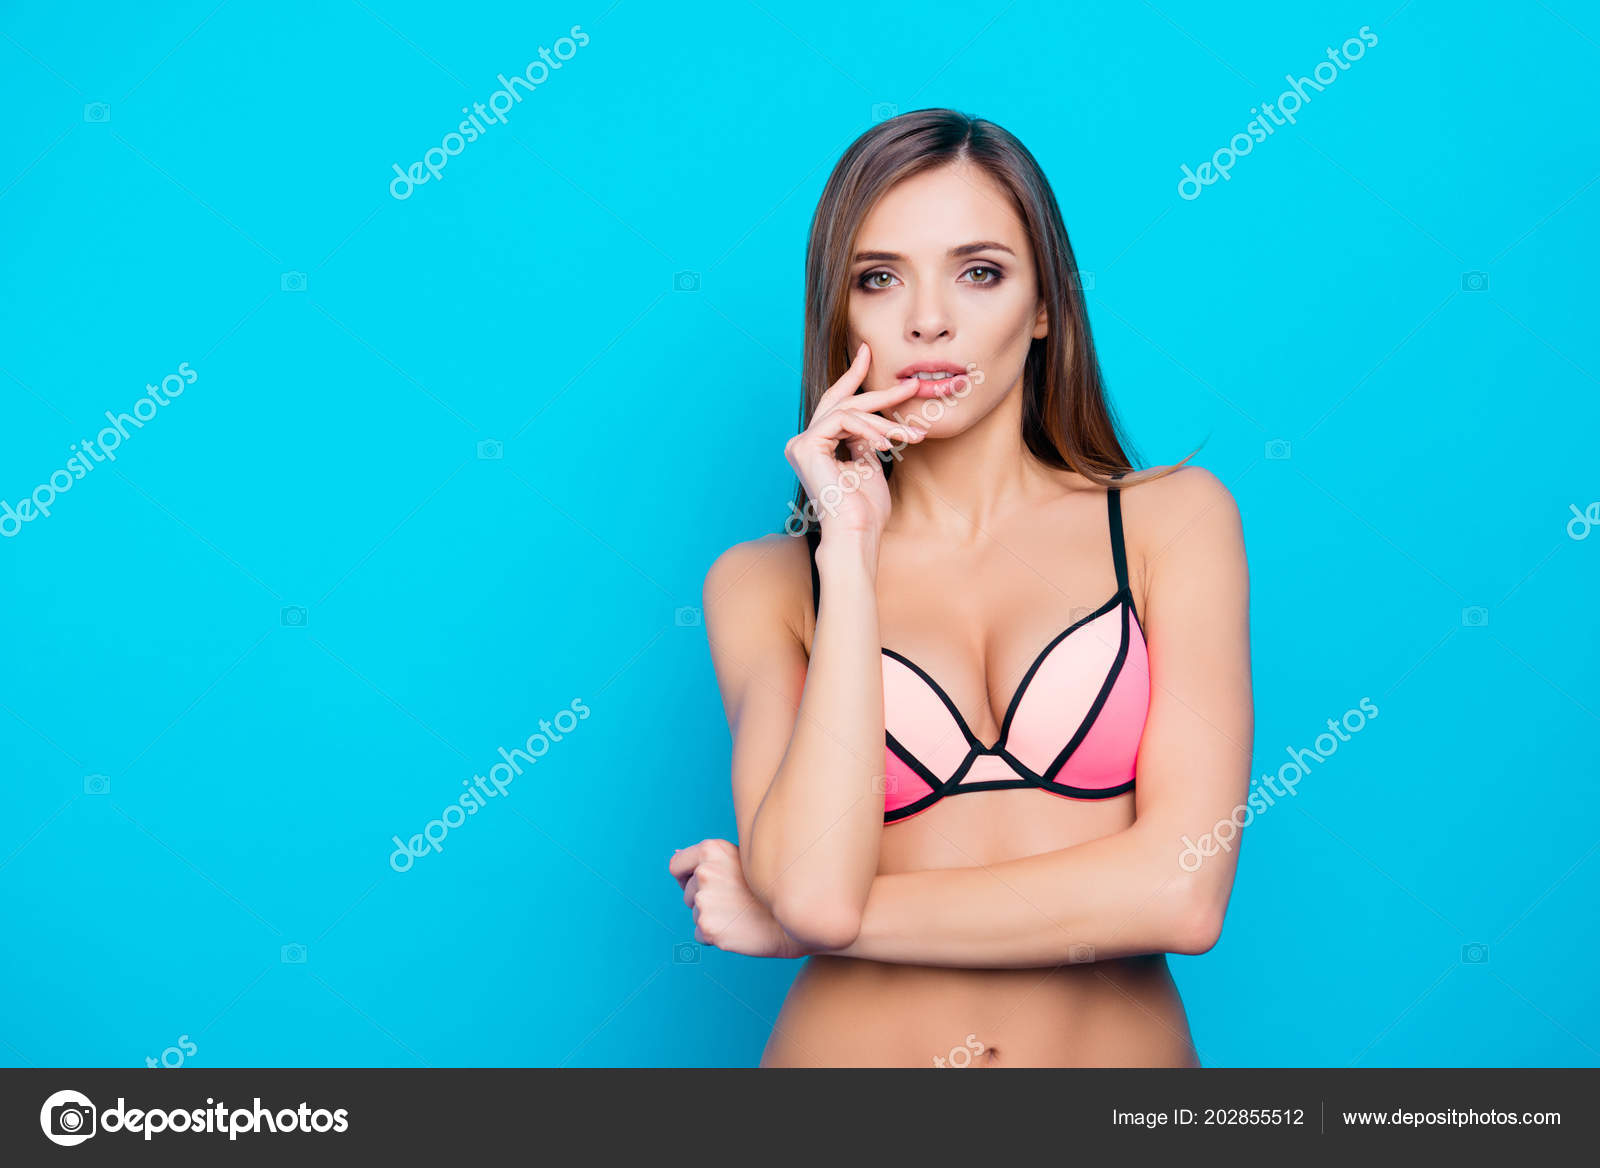 cbf0359f8b Portrait with copy space empty place of trendy stylish girl in swim wear  holding hand near mouth looking at camera standing over blue background with  ...